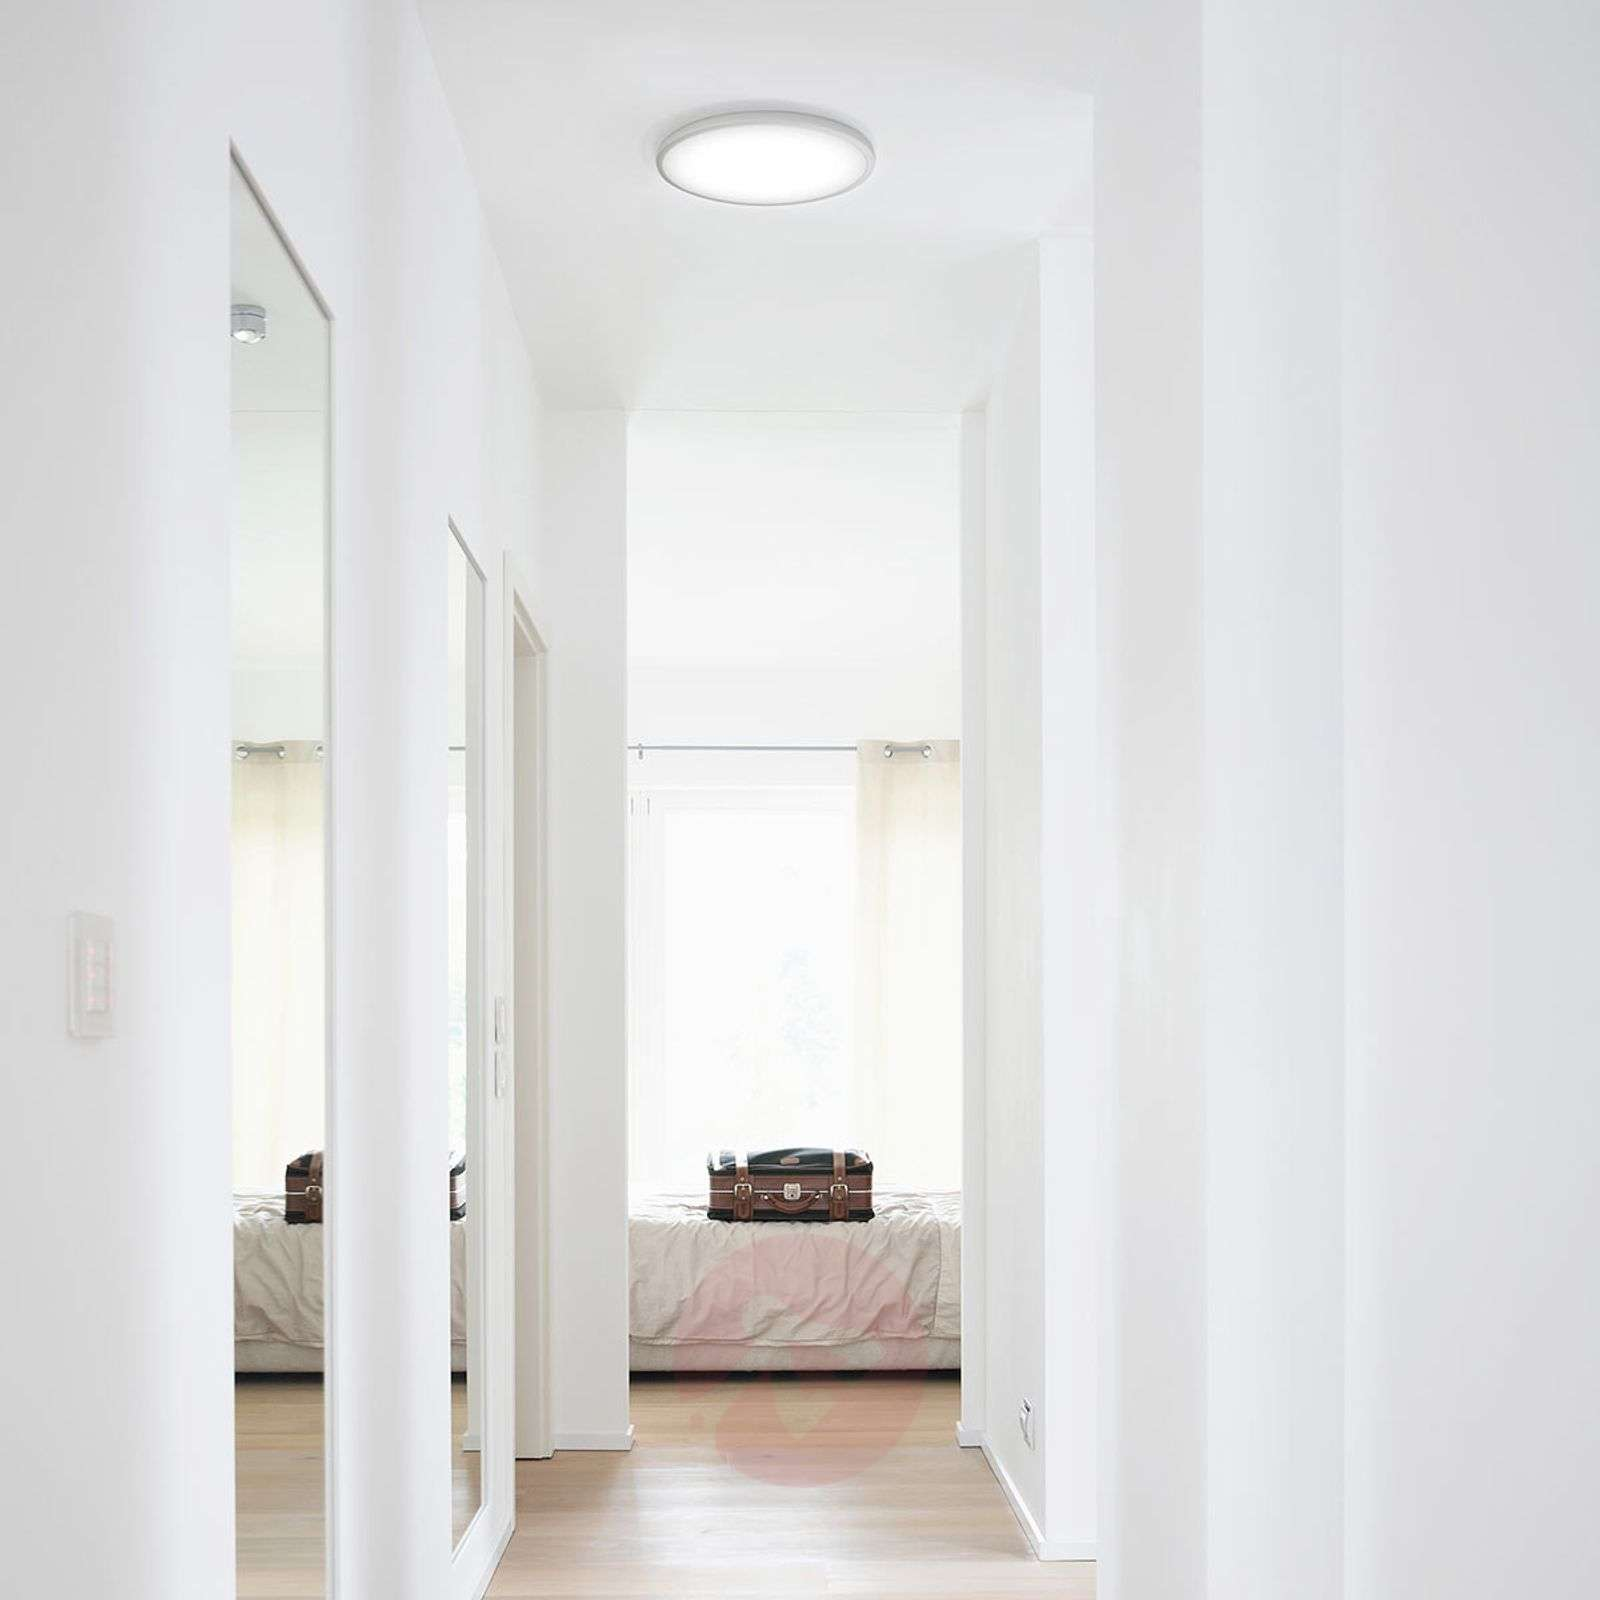 Silara LED ceiling light with remote control-7261238-02